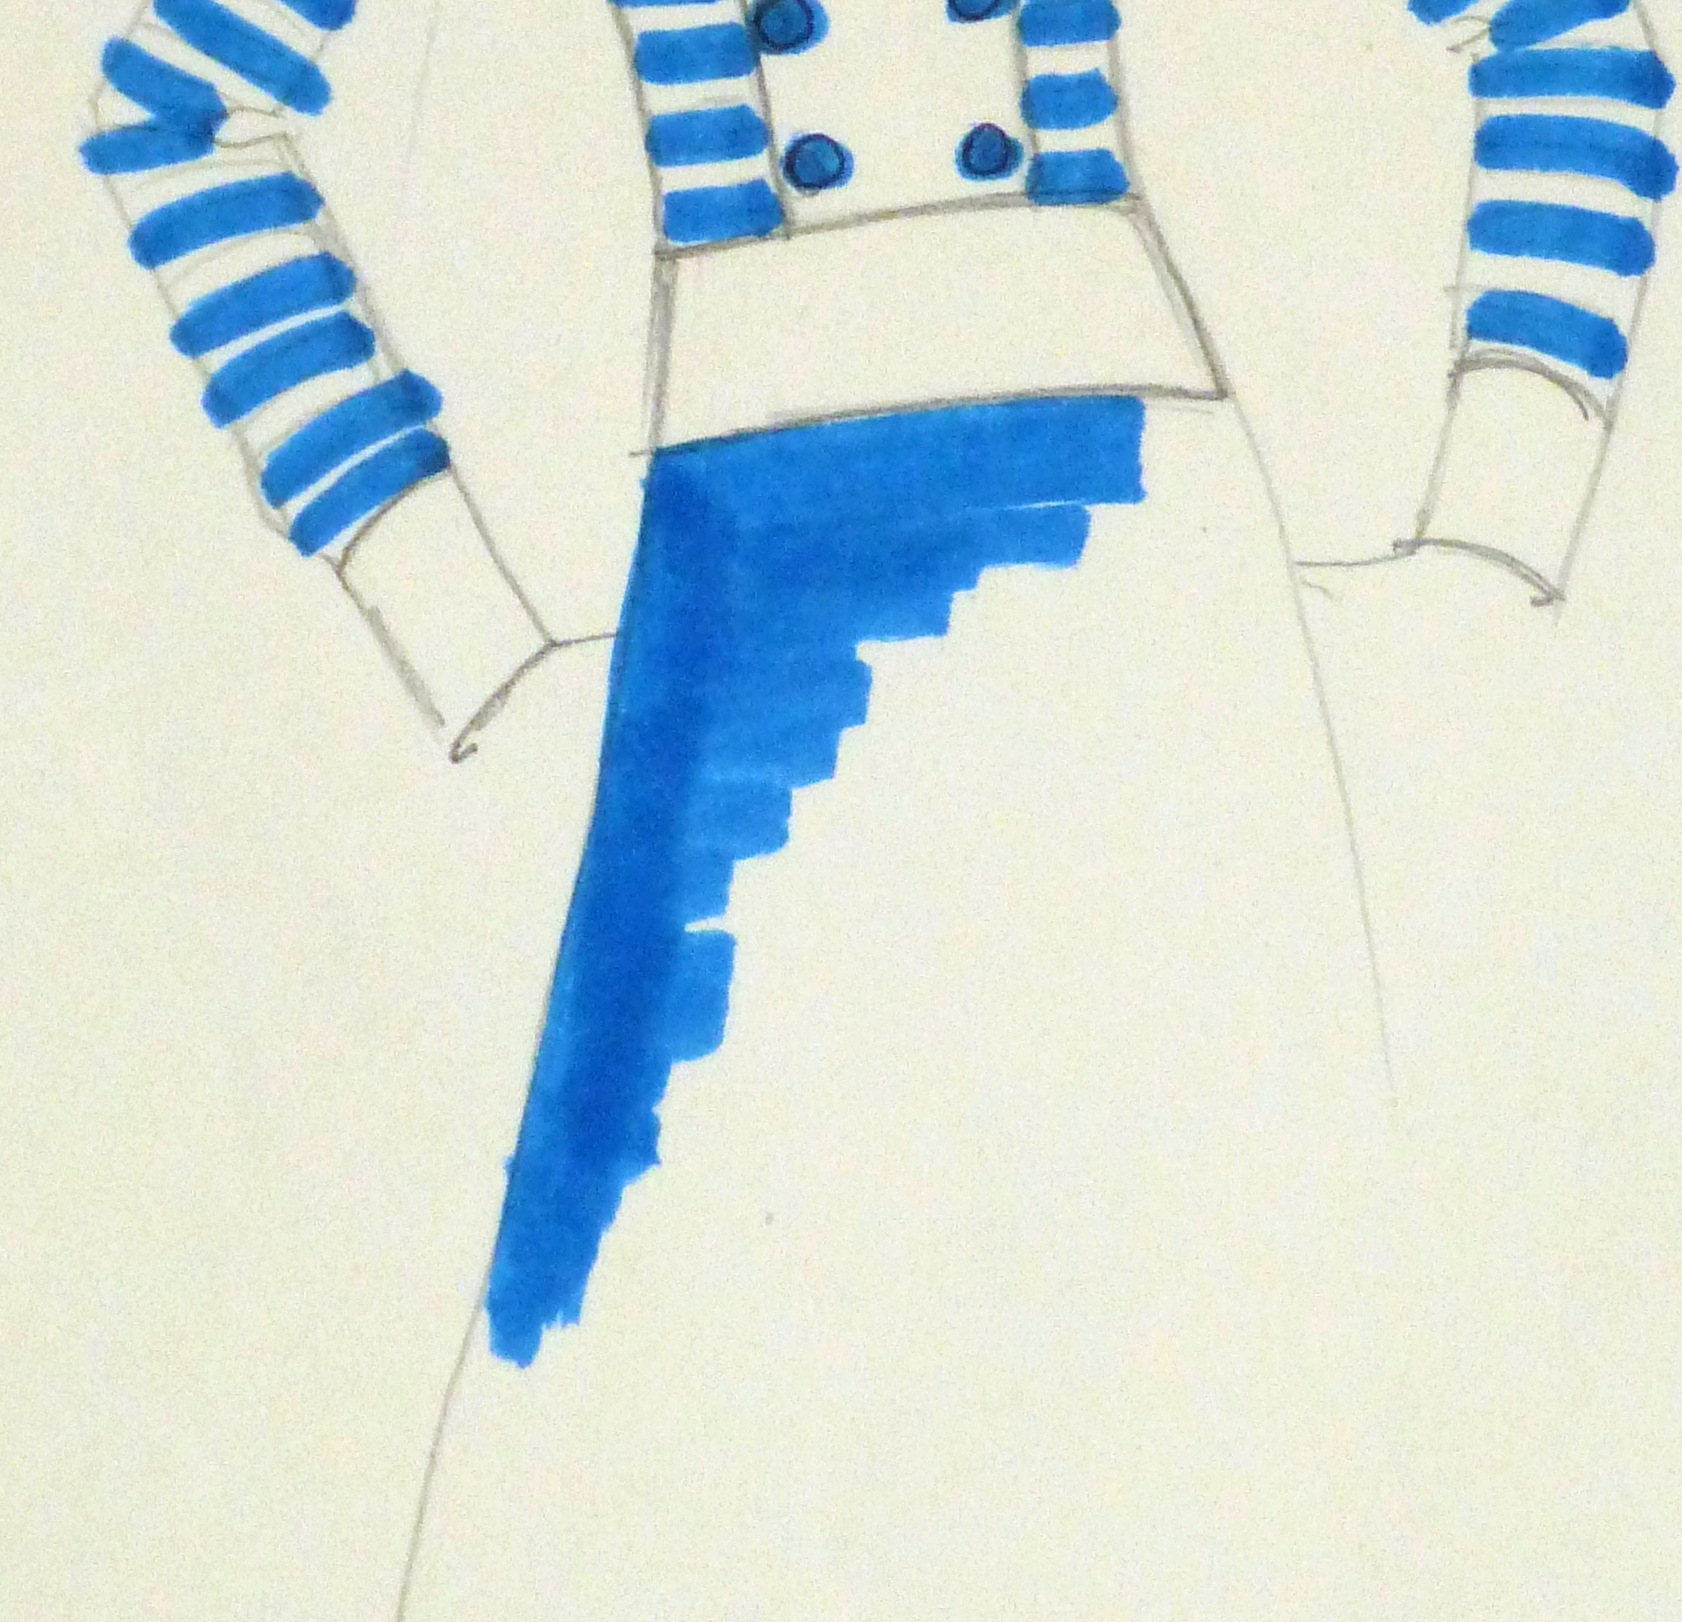 Ink & pencil Fashion Sketch - Blue Button - detail 2 -10109M